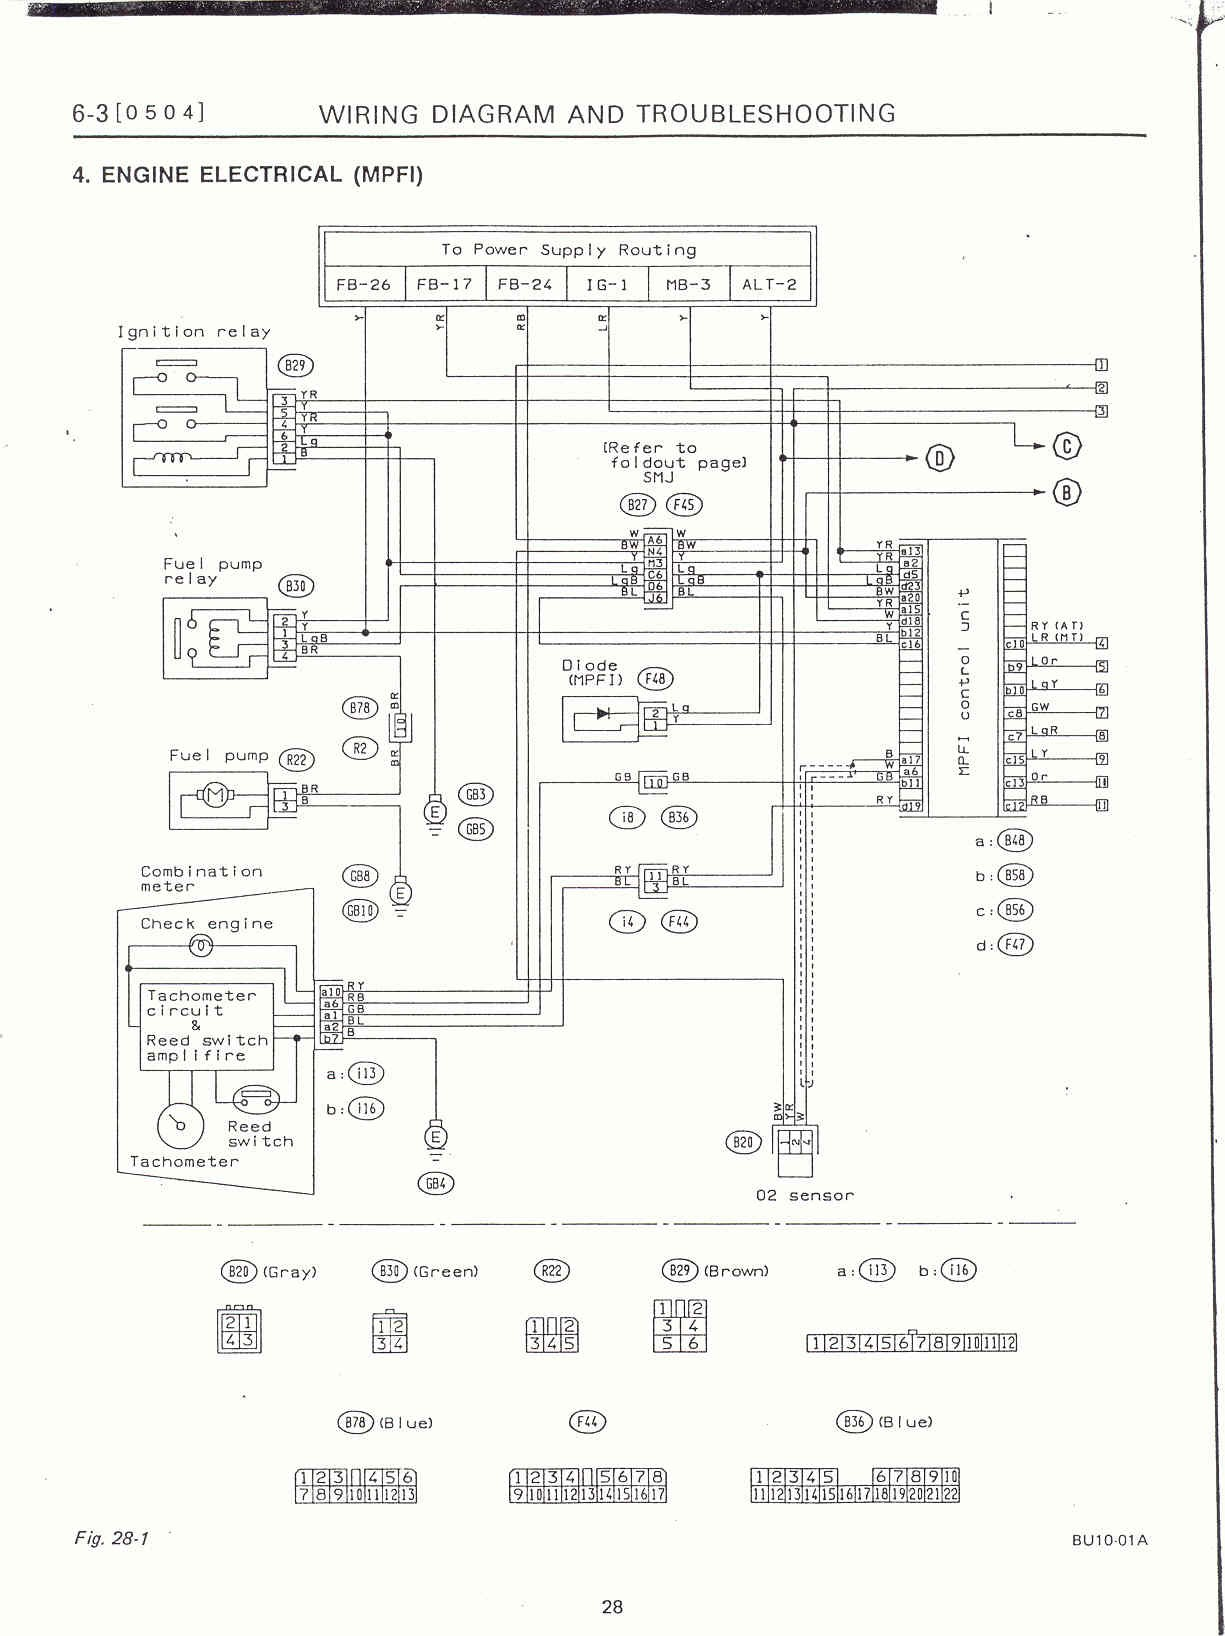 wrg 4272 96 subaru legacy wiring diagram. Black Bedroom Furniture Sets. Home Design Ideas